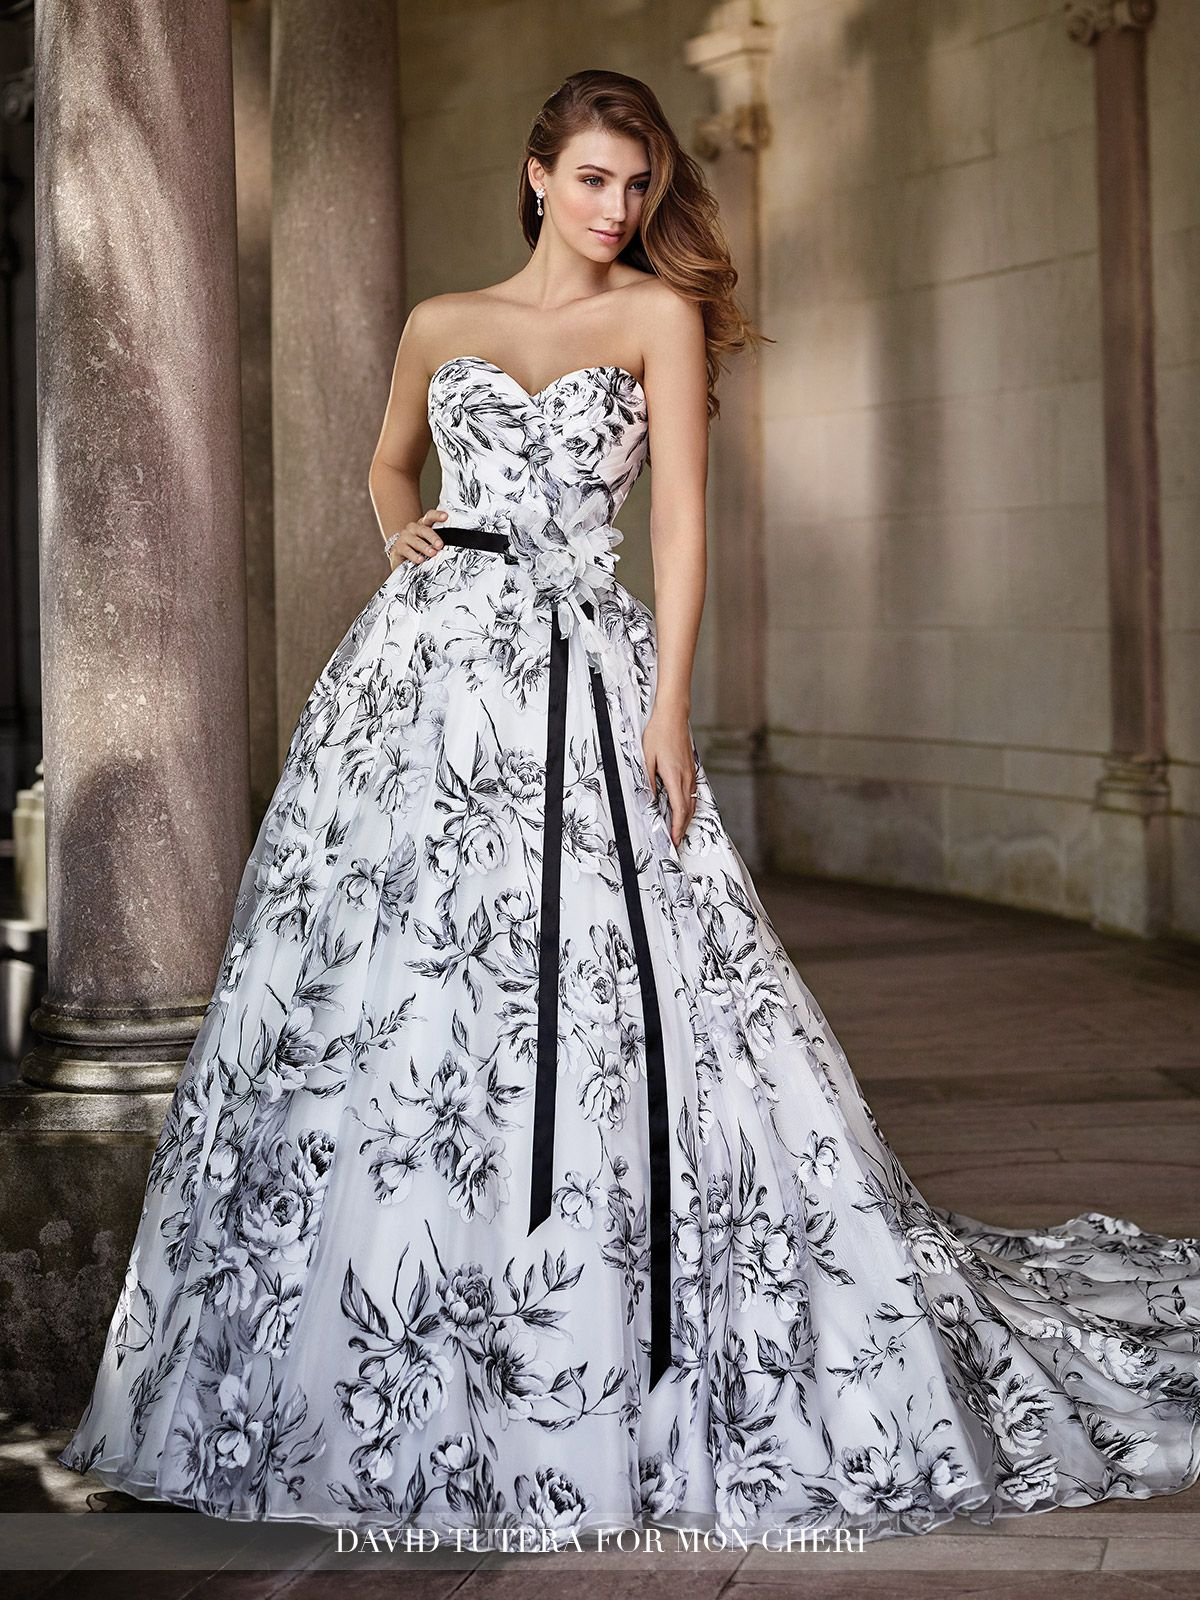 d6c1d637d2d David Tutera for Mon Cheri - 117283 Orabelle - Strapless floral printed  burnout organza over satin A-line gown with sweetheart neckline